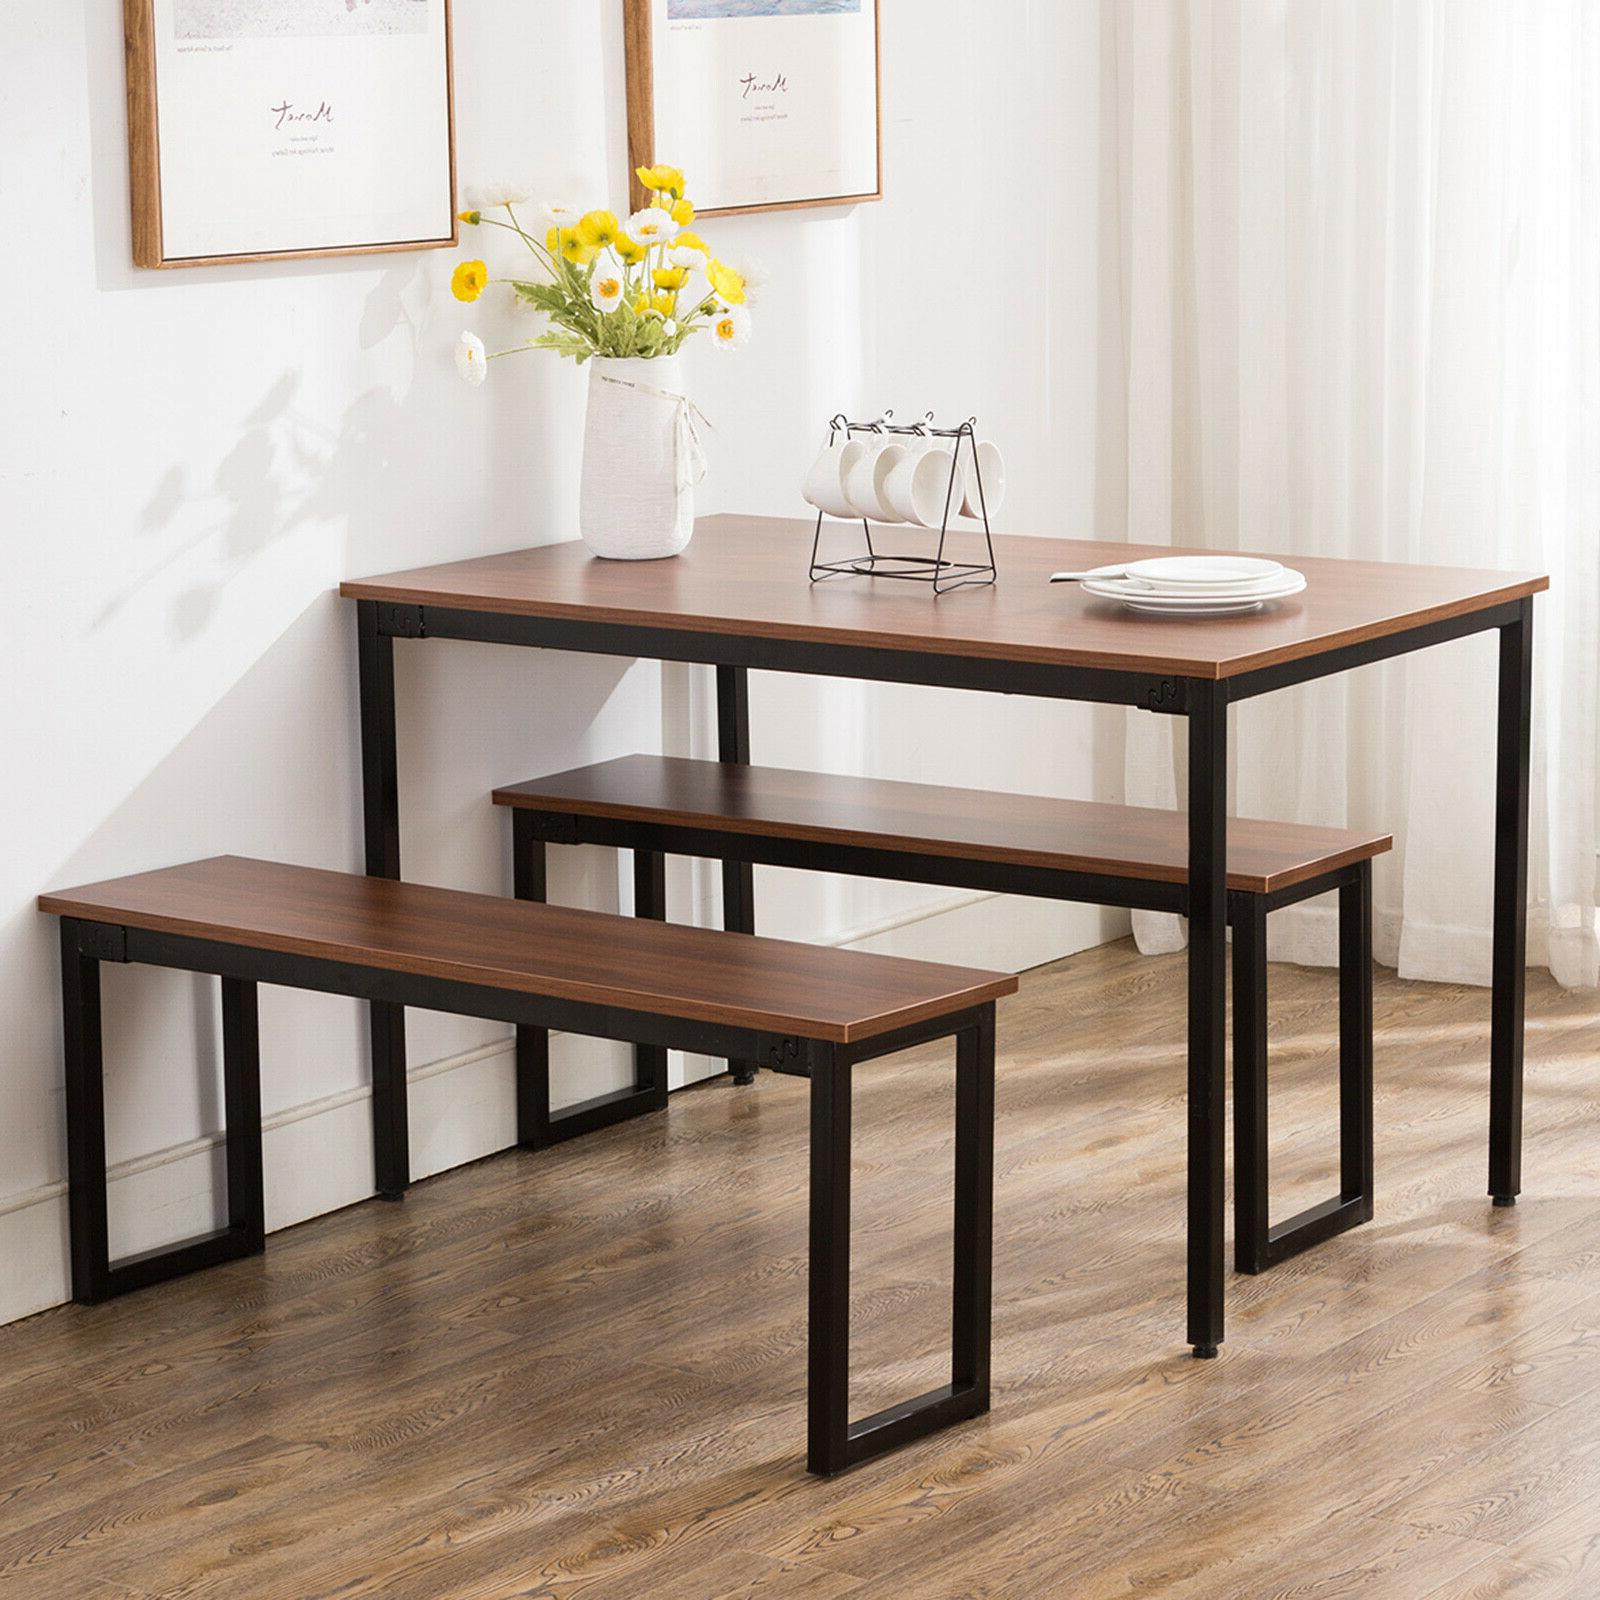 3-Piece Wood Dining Table Set With